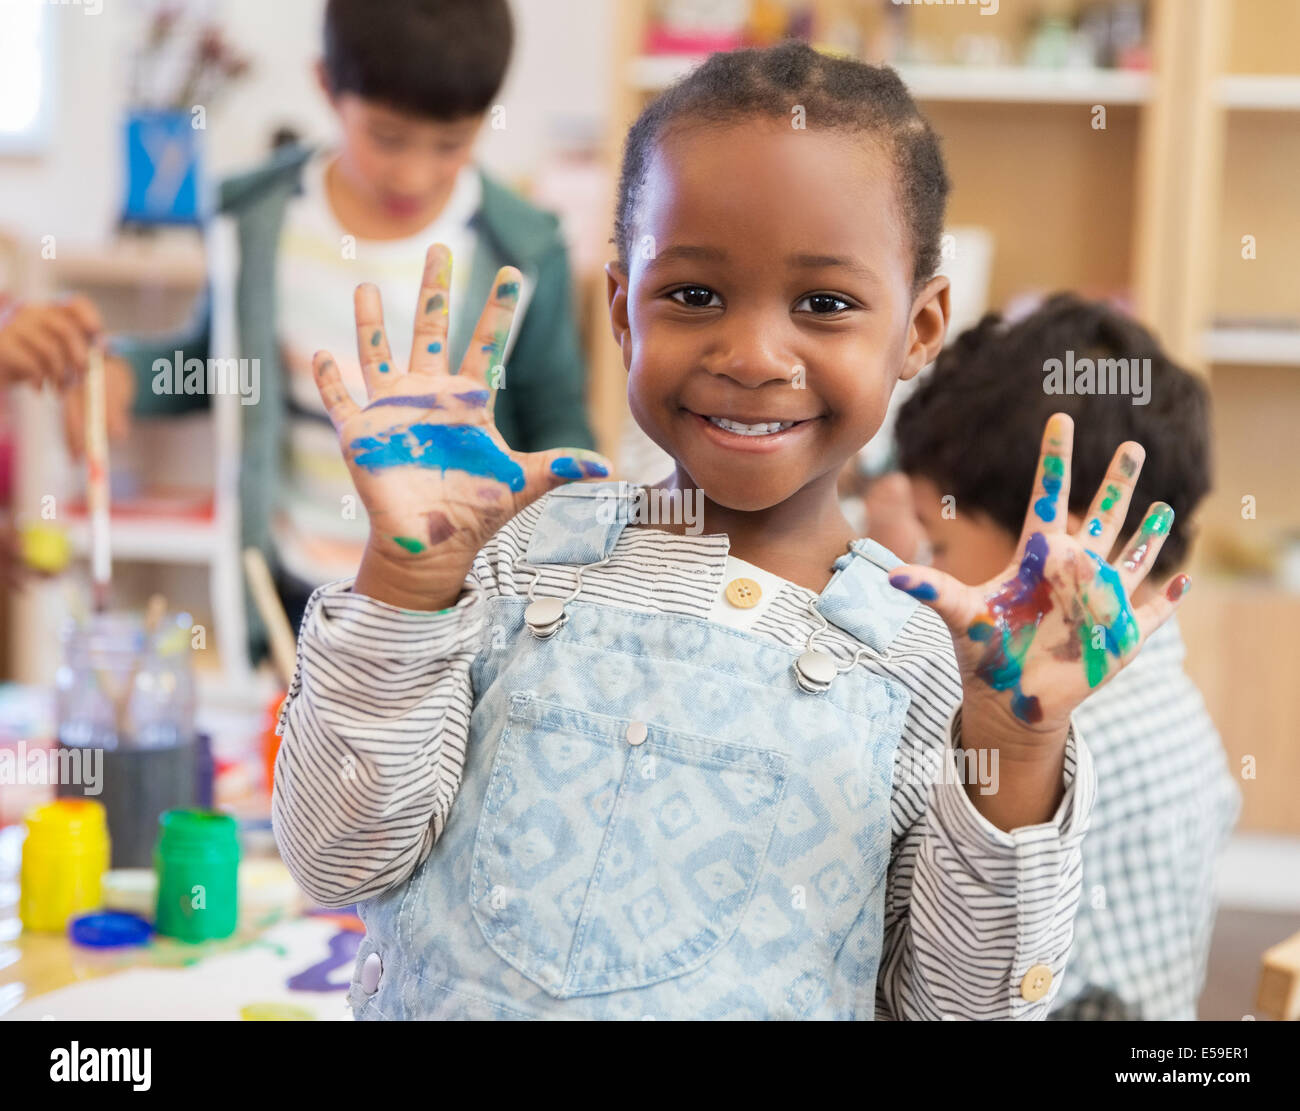 Student with messy hands in classroom - Stock Image